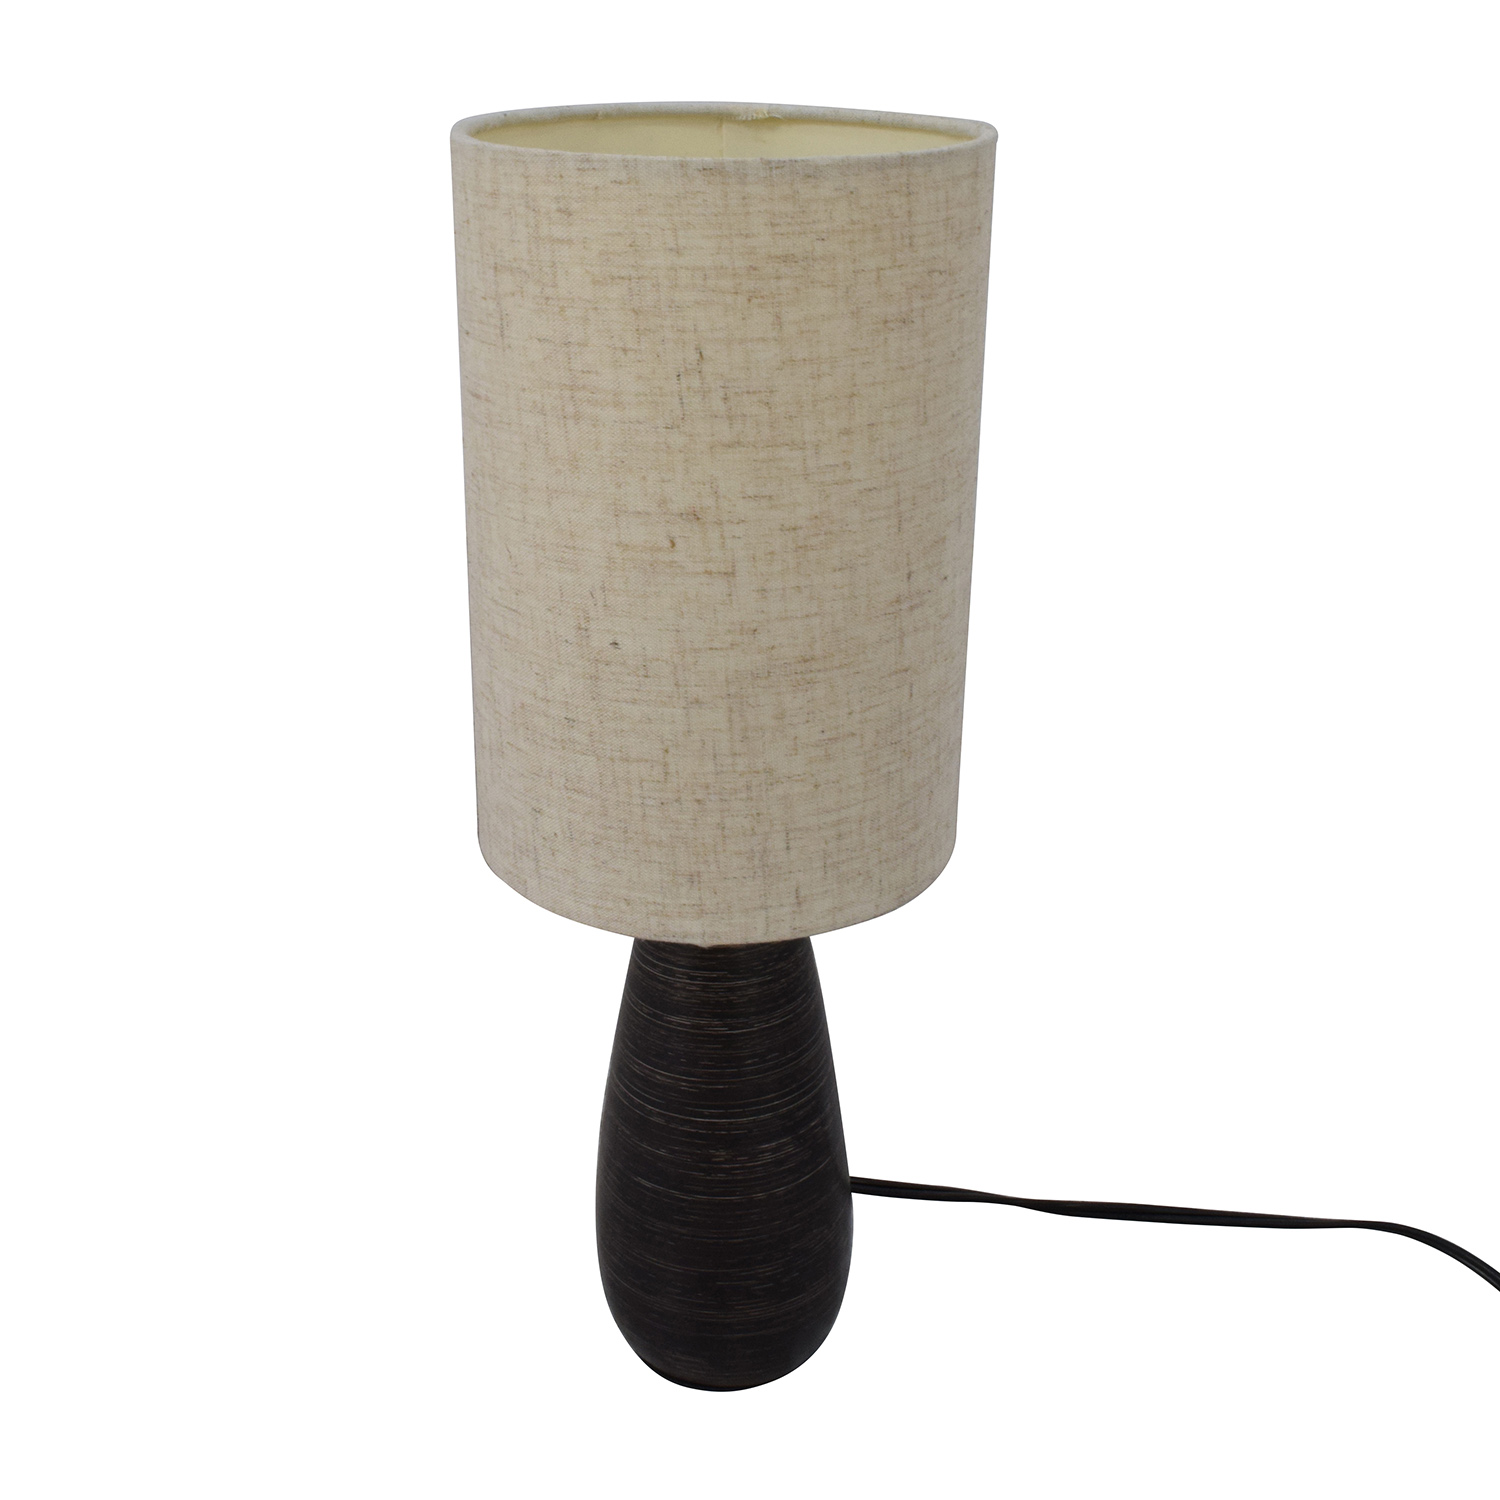 Brown Lamp with Beige Shade / Decor